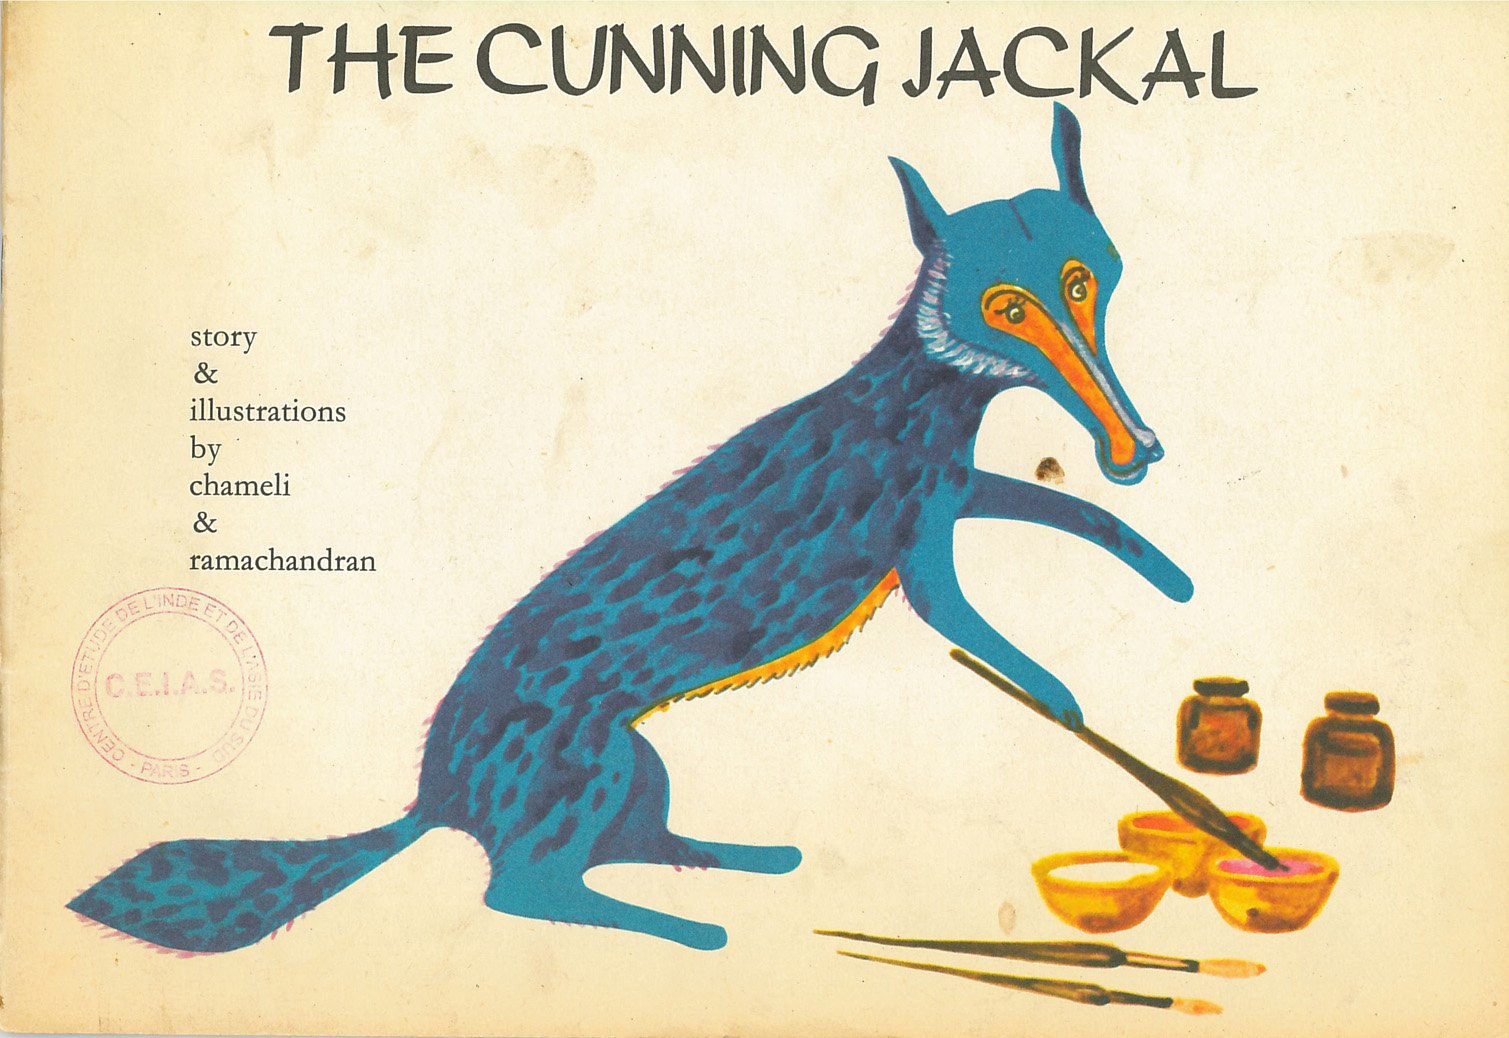 The cunning jackal